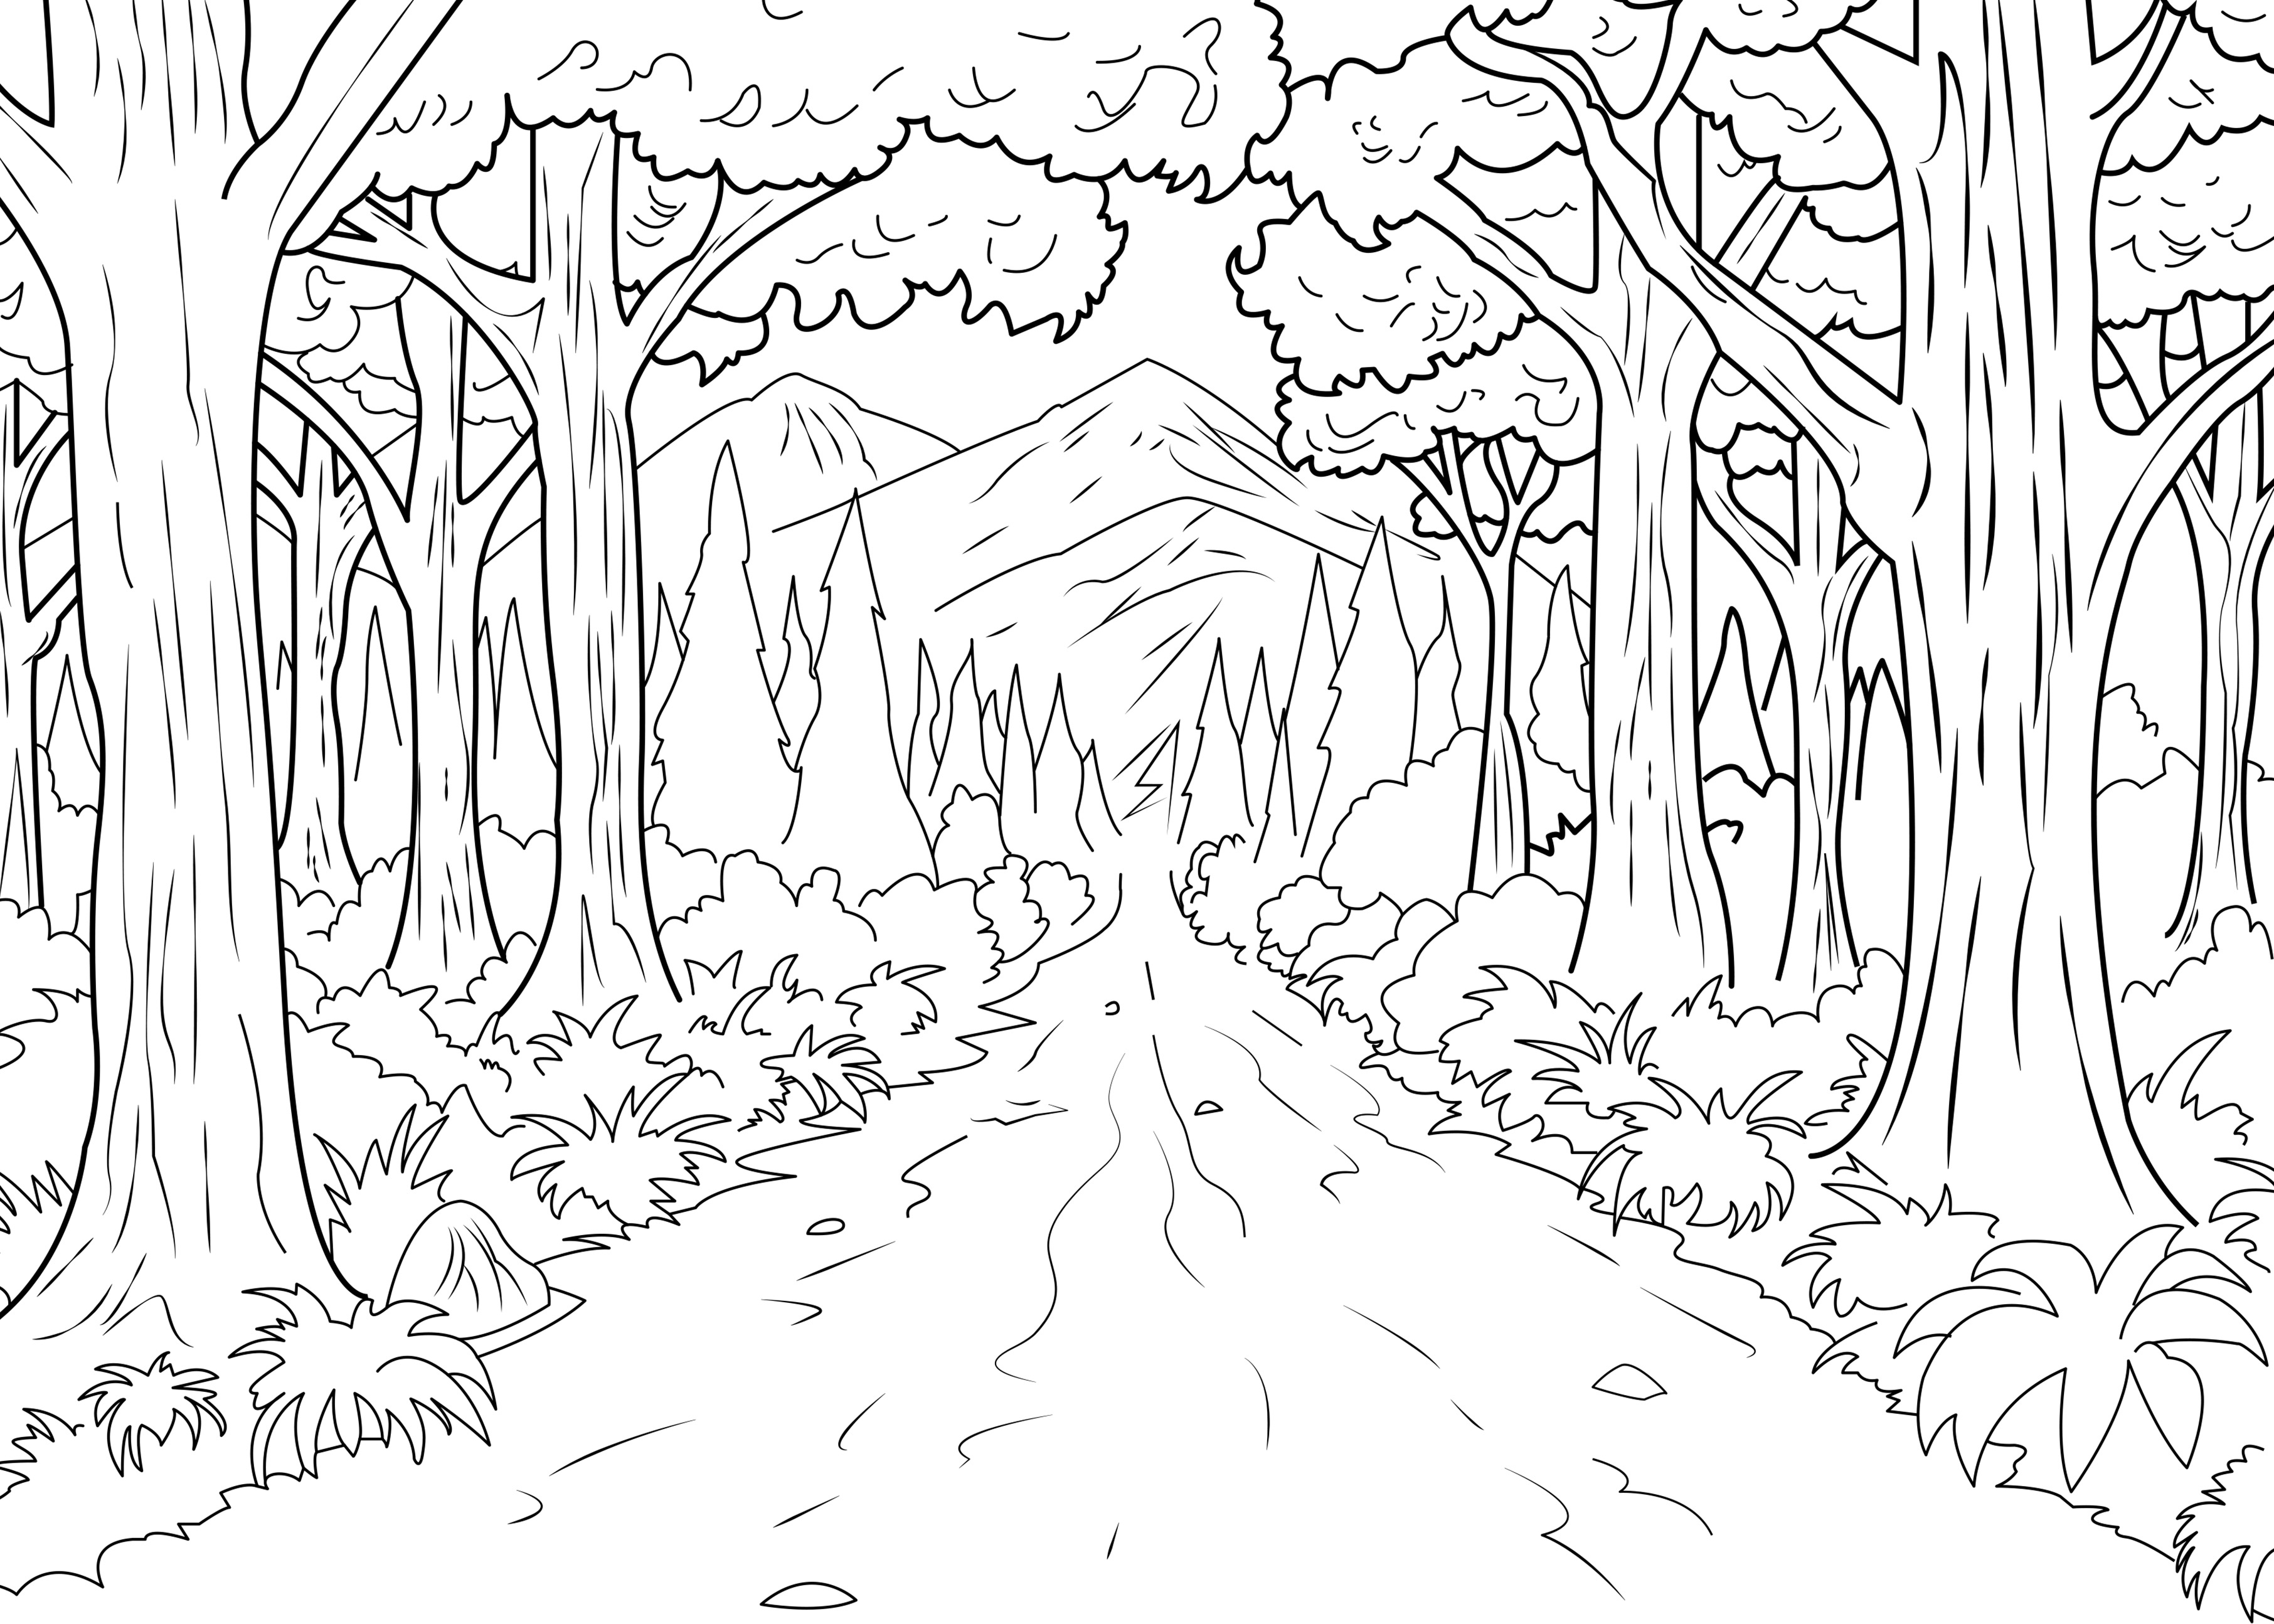 forest coloring page open season in forest coloring pages for kids printable free forest coloring page